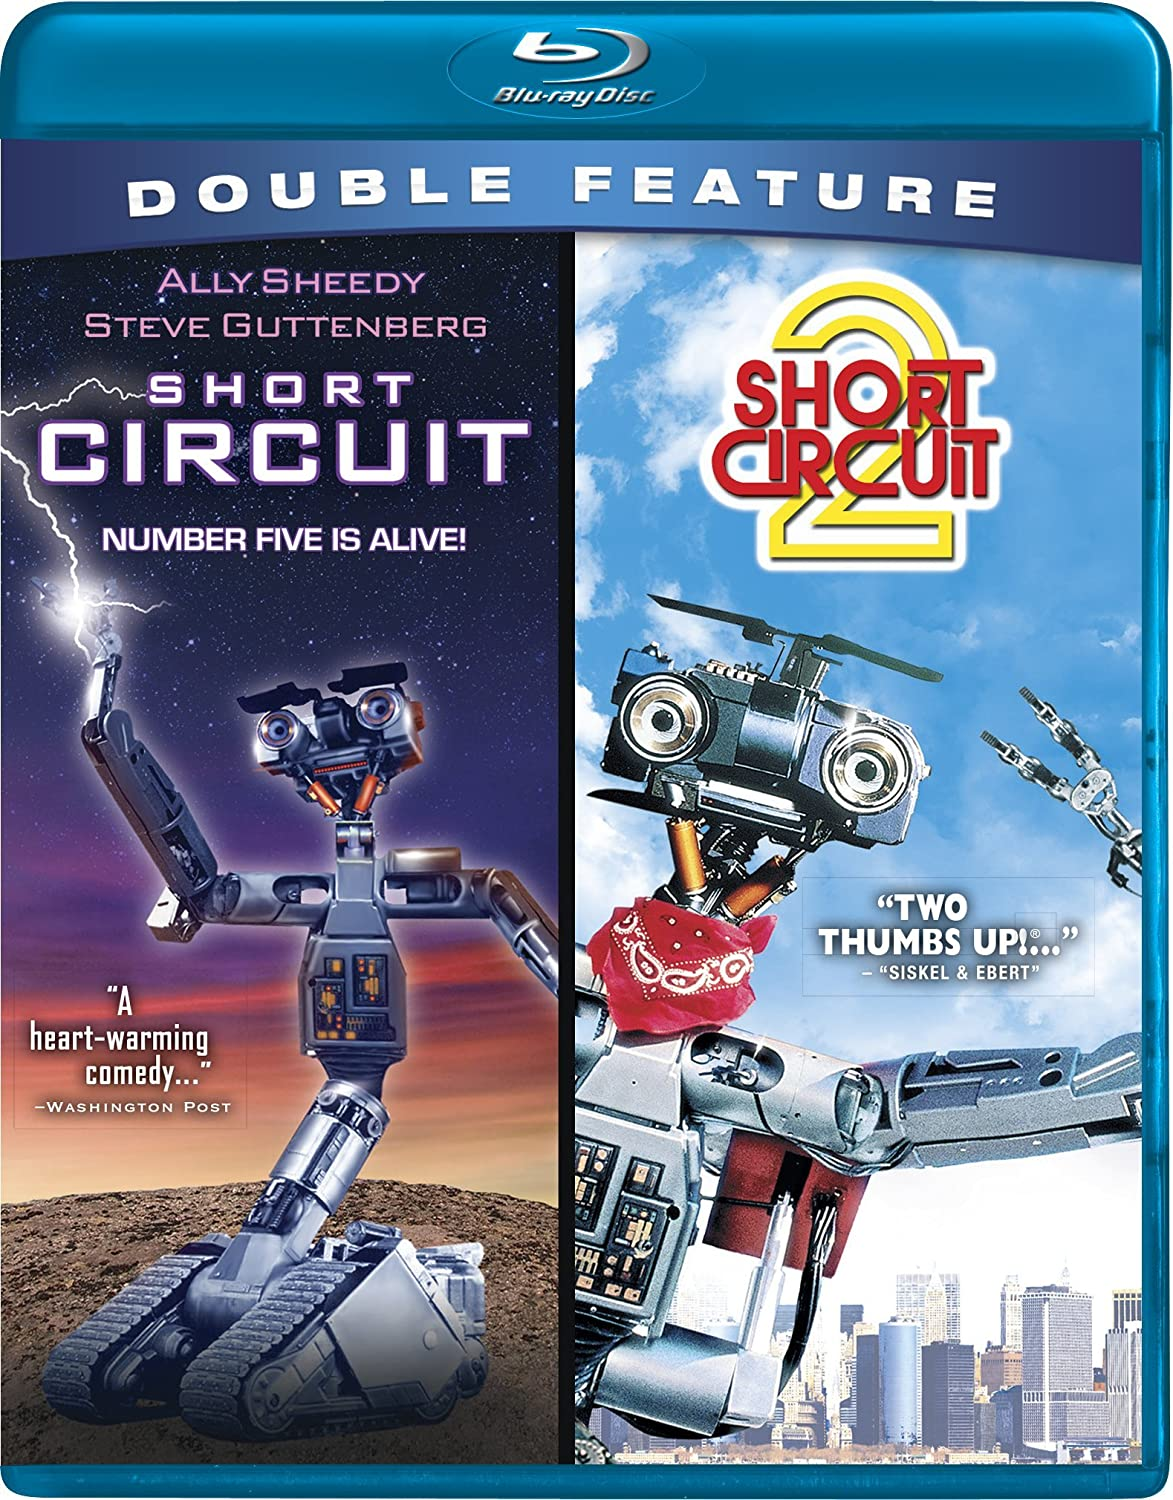 Short Circuit 2 Blu Ray Ally Sheedy Number 5 Is Alive Johnny From The Movie Fisher Stevens Michael Mckean Steve Guttenberg John Badham Kenneth Johnson Movies